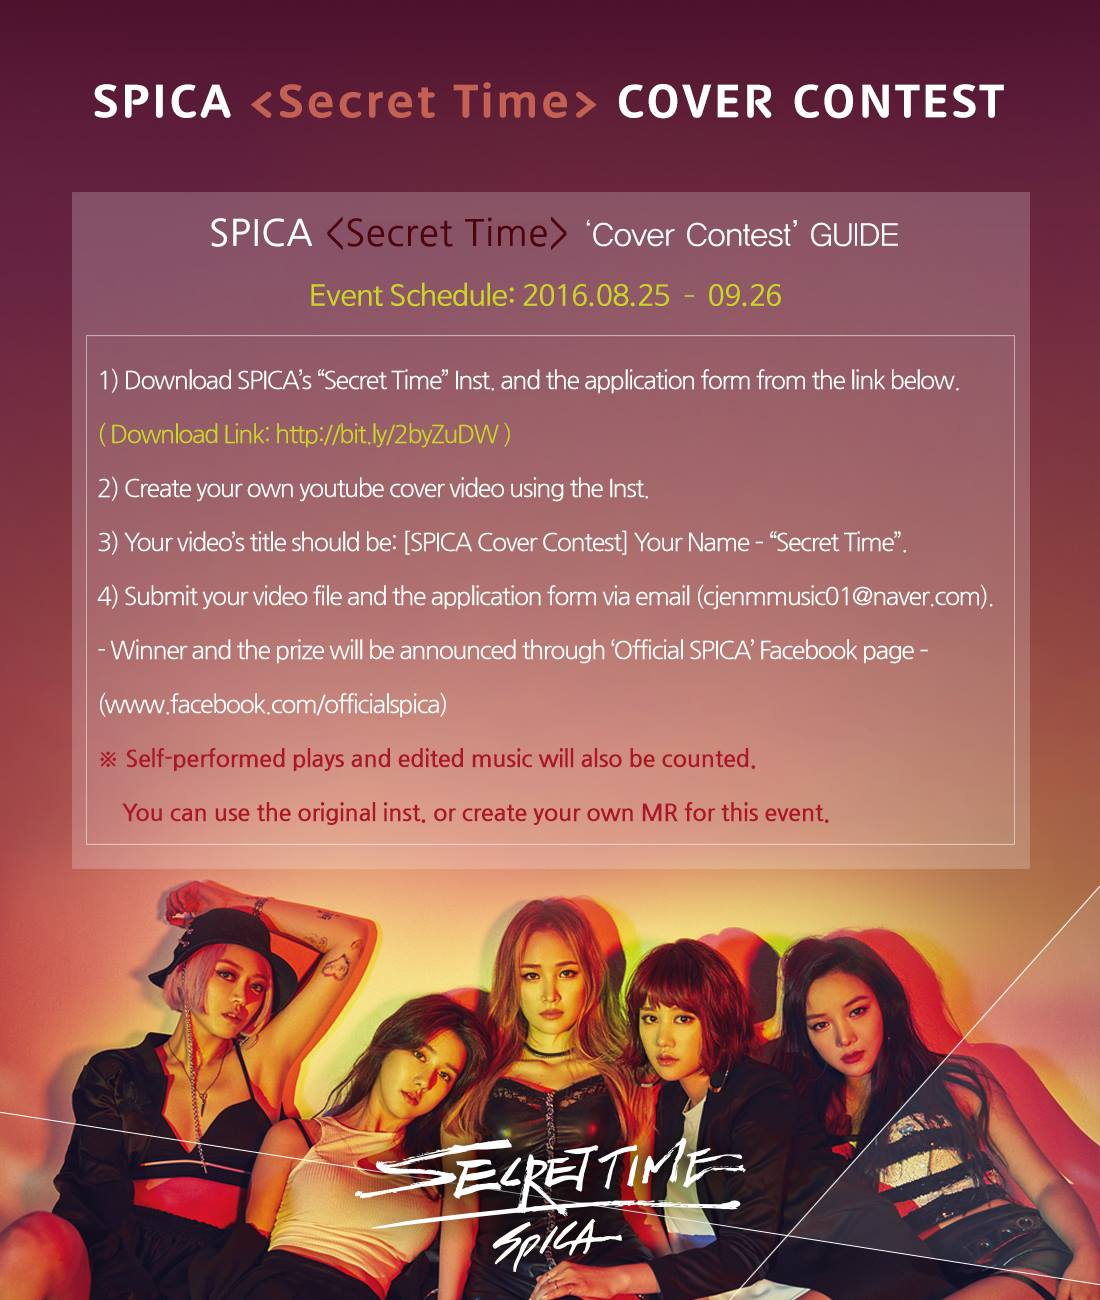 SPICA Holds a Contest to Find the Best Cover Fan for